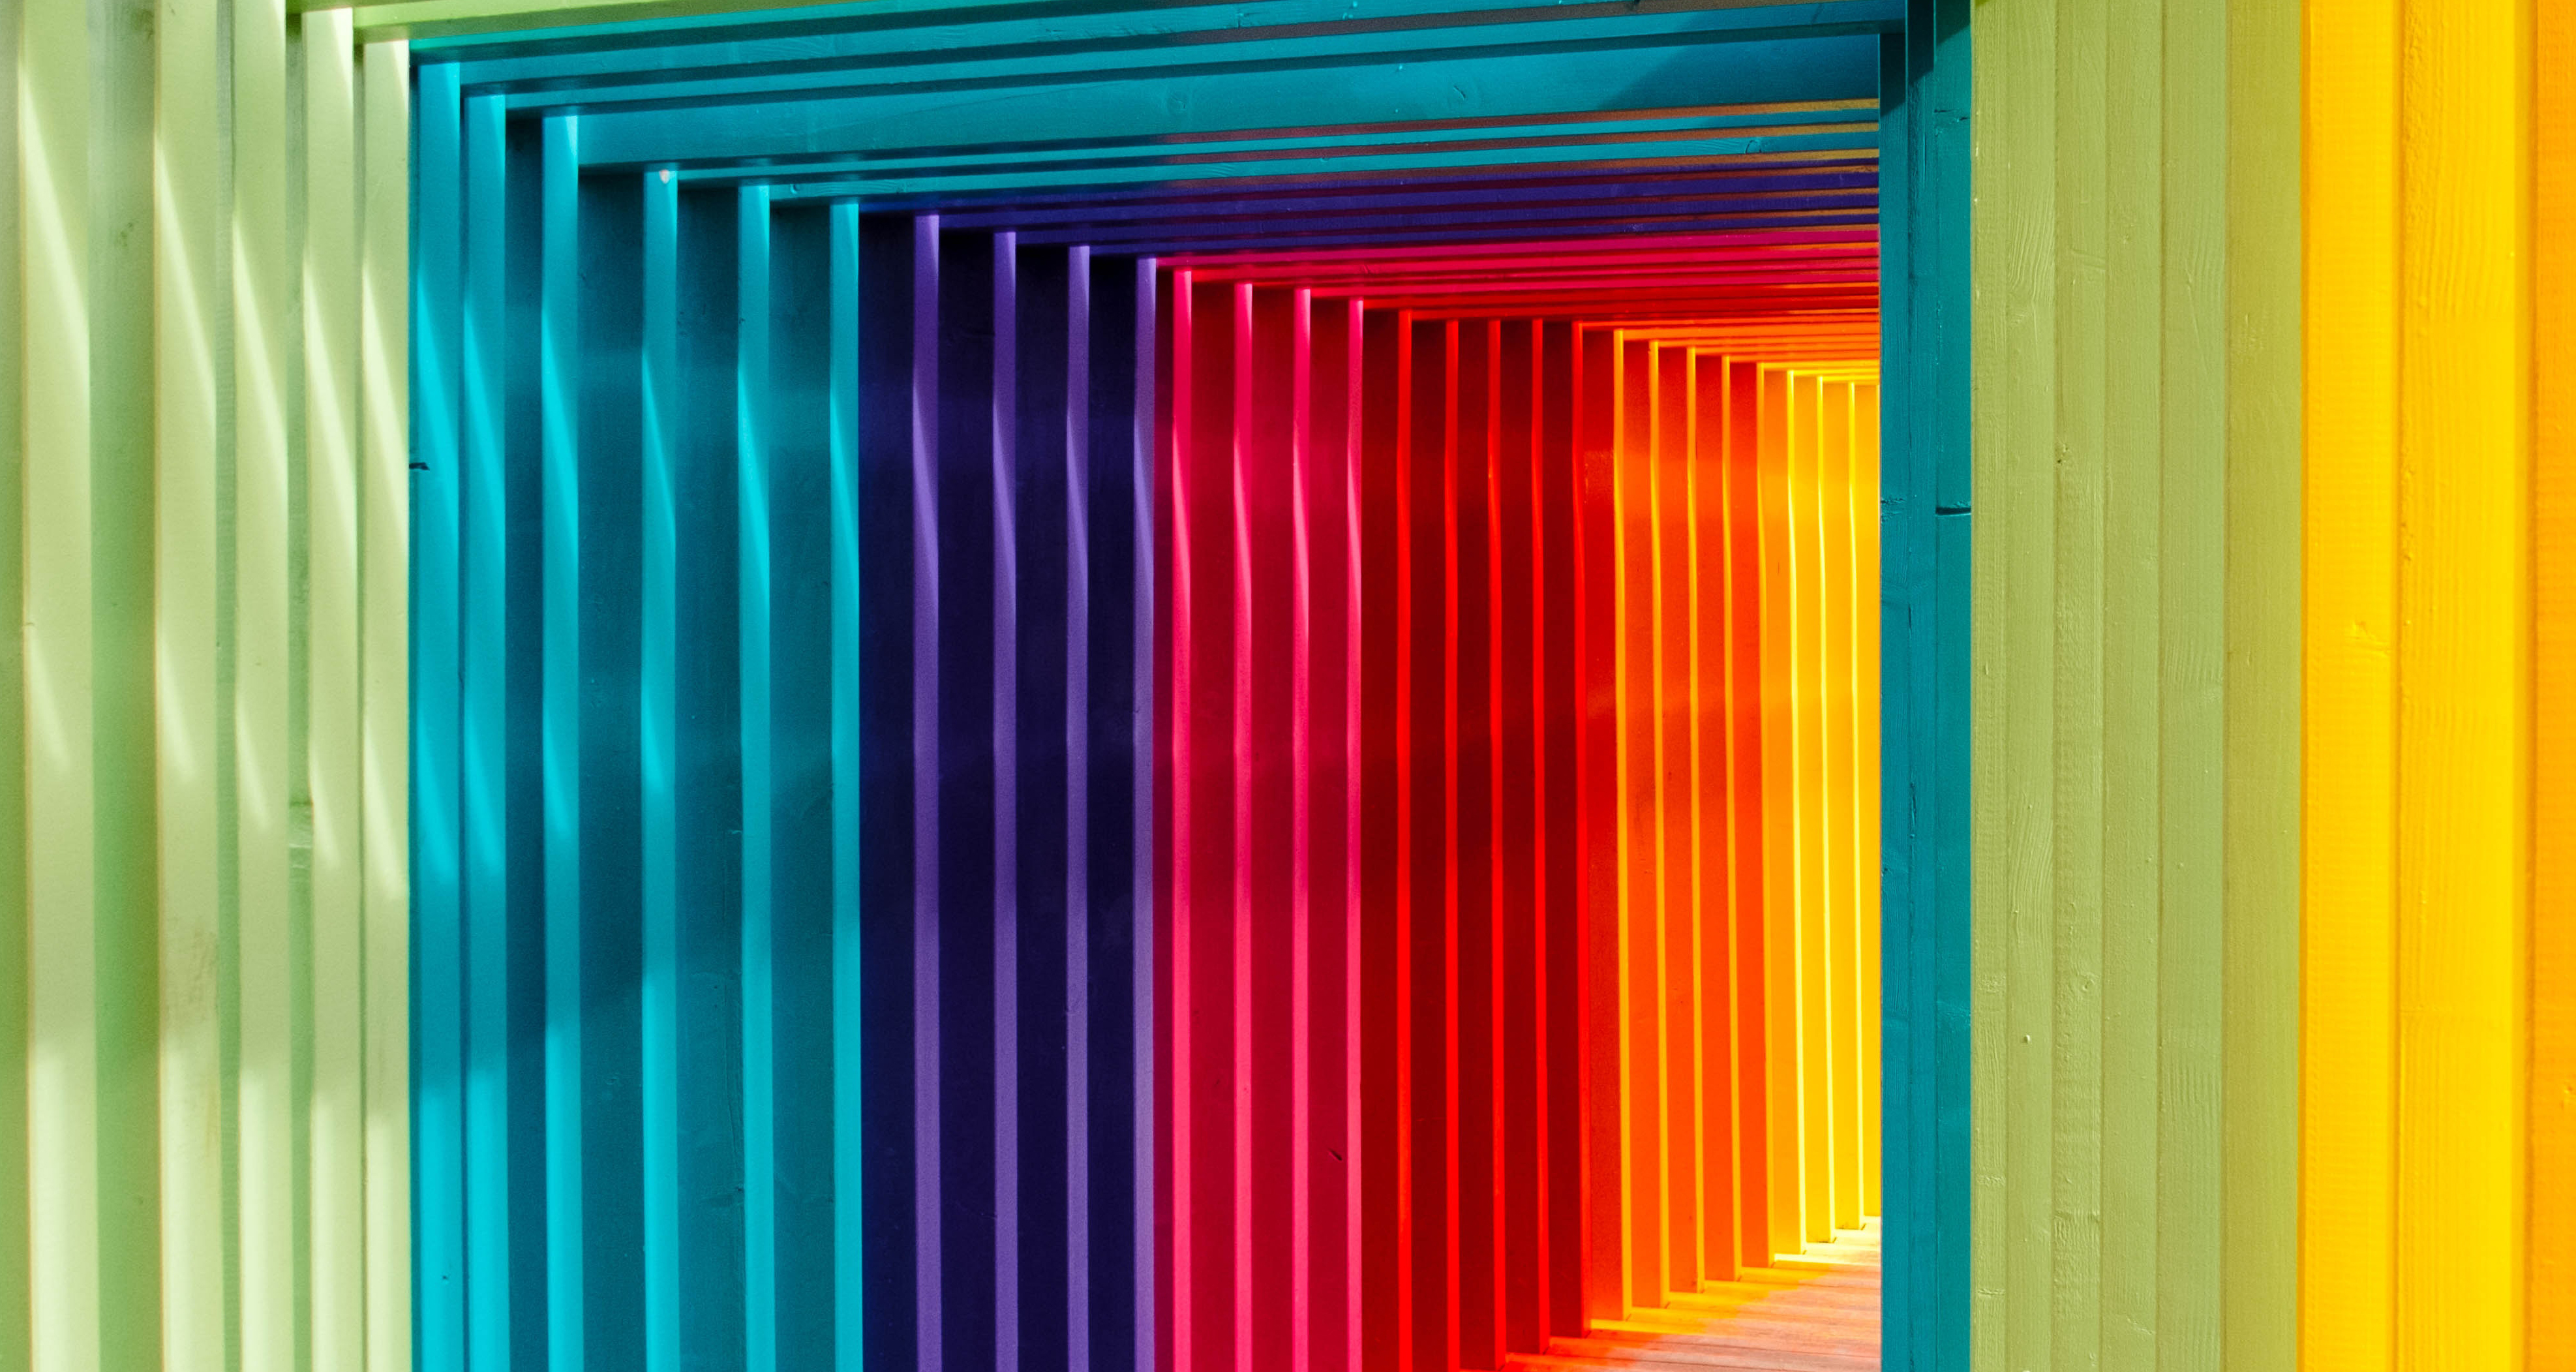 Colour Psychology for Branding and Communications